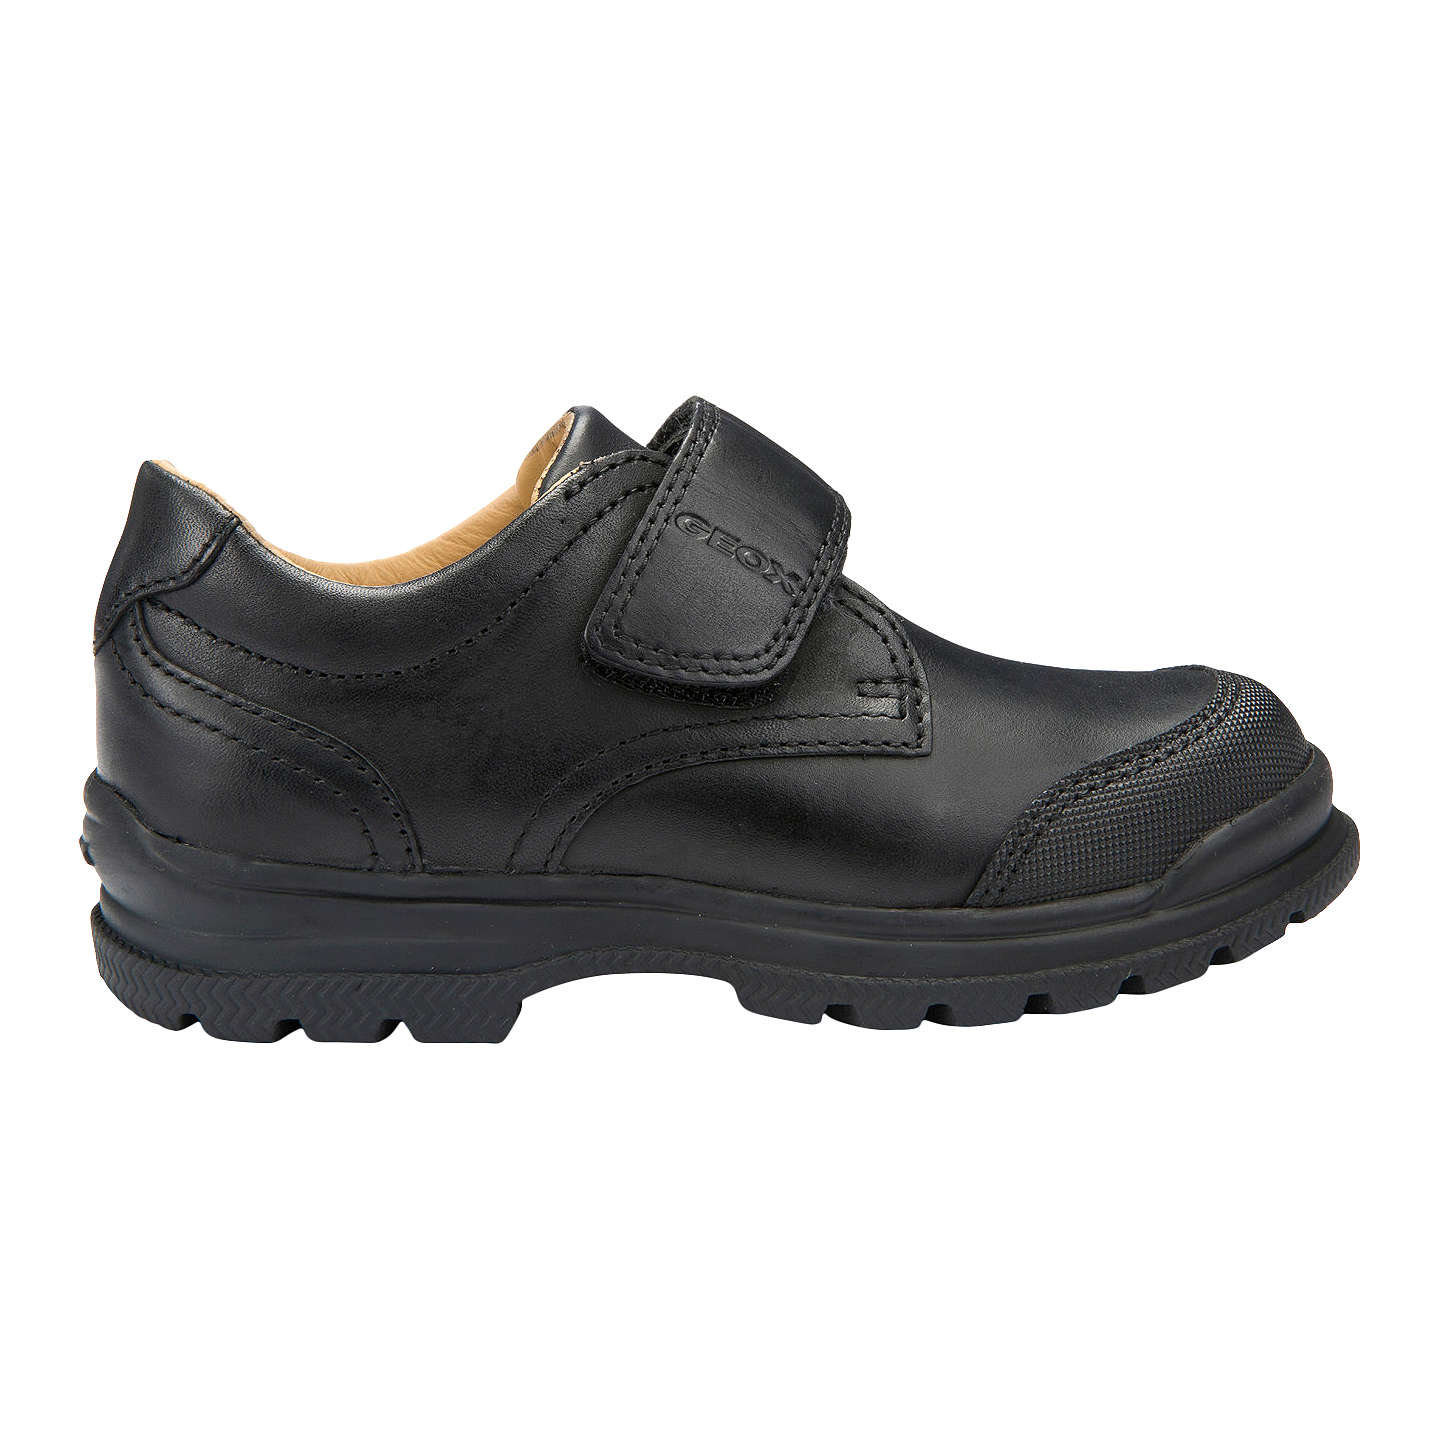 Geox William School Shoes Black